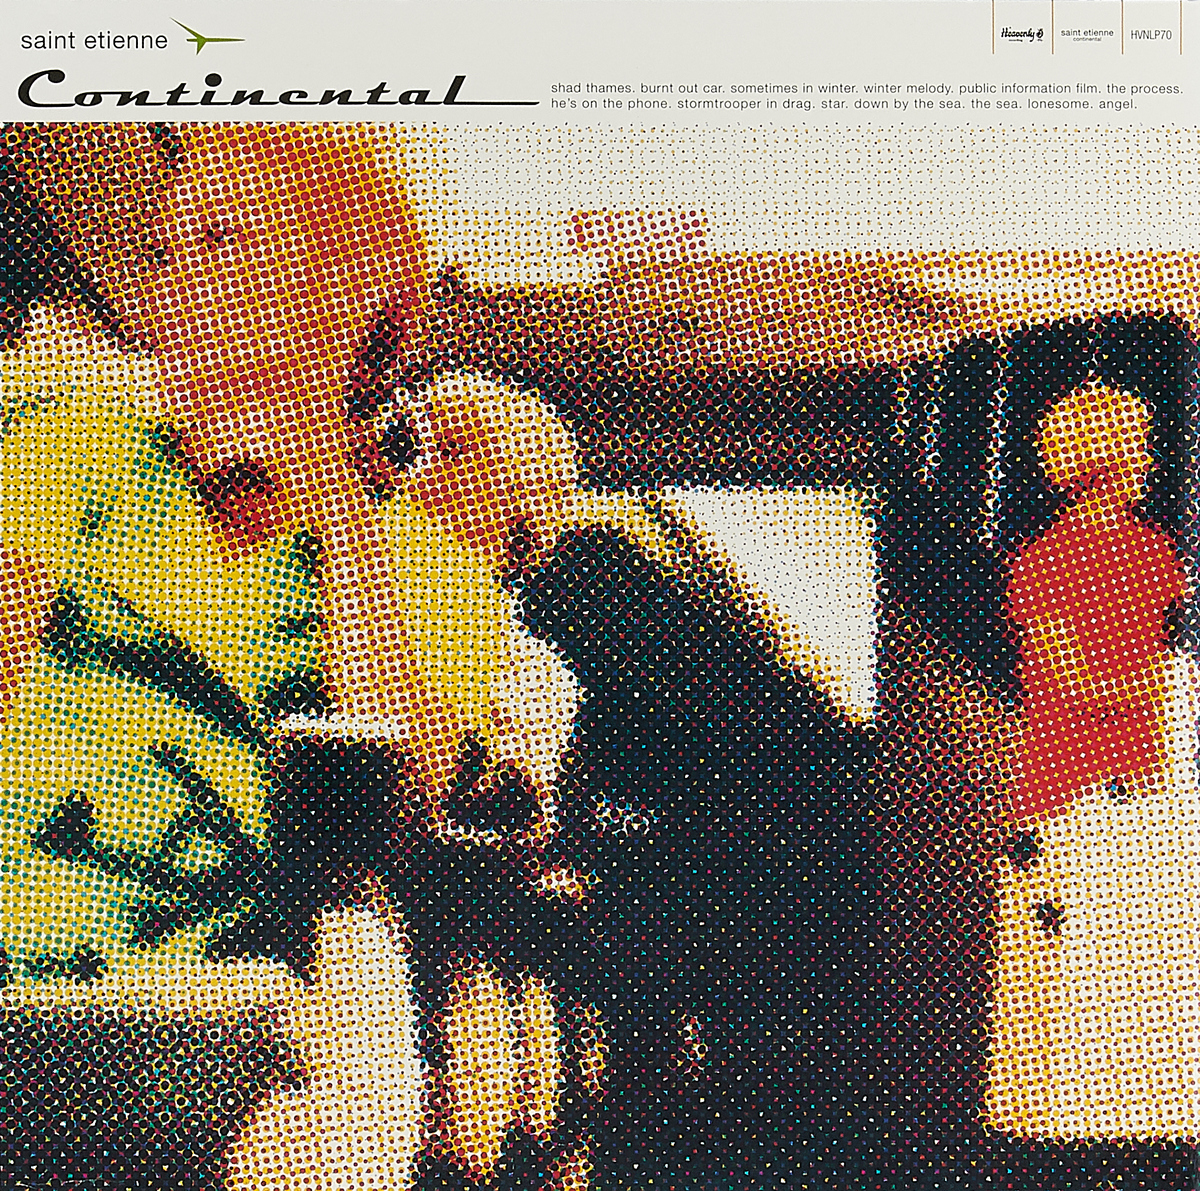 Saint Etienne Saint Etienne. Continental (Re-issue) (LP) as saint etienne stade de rennes fc